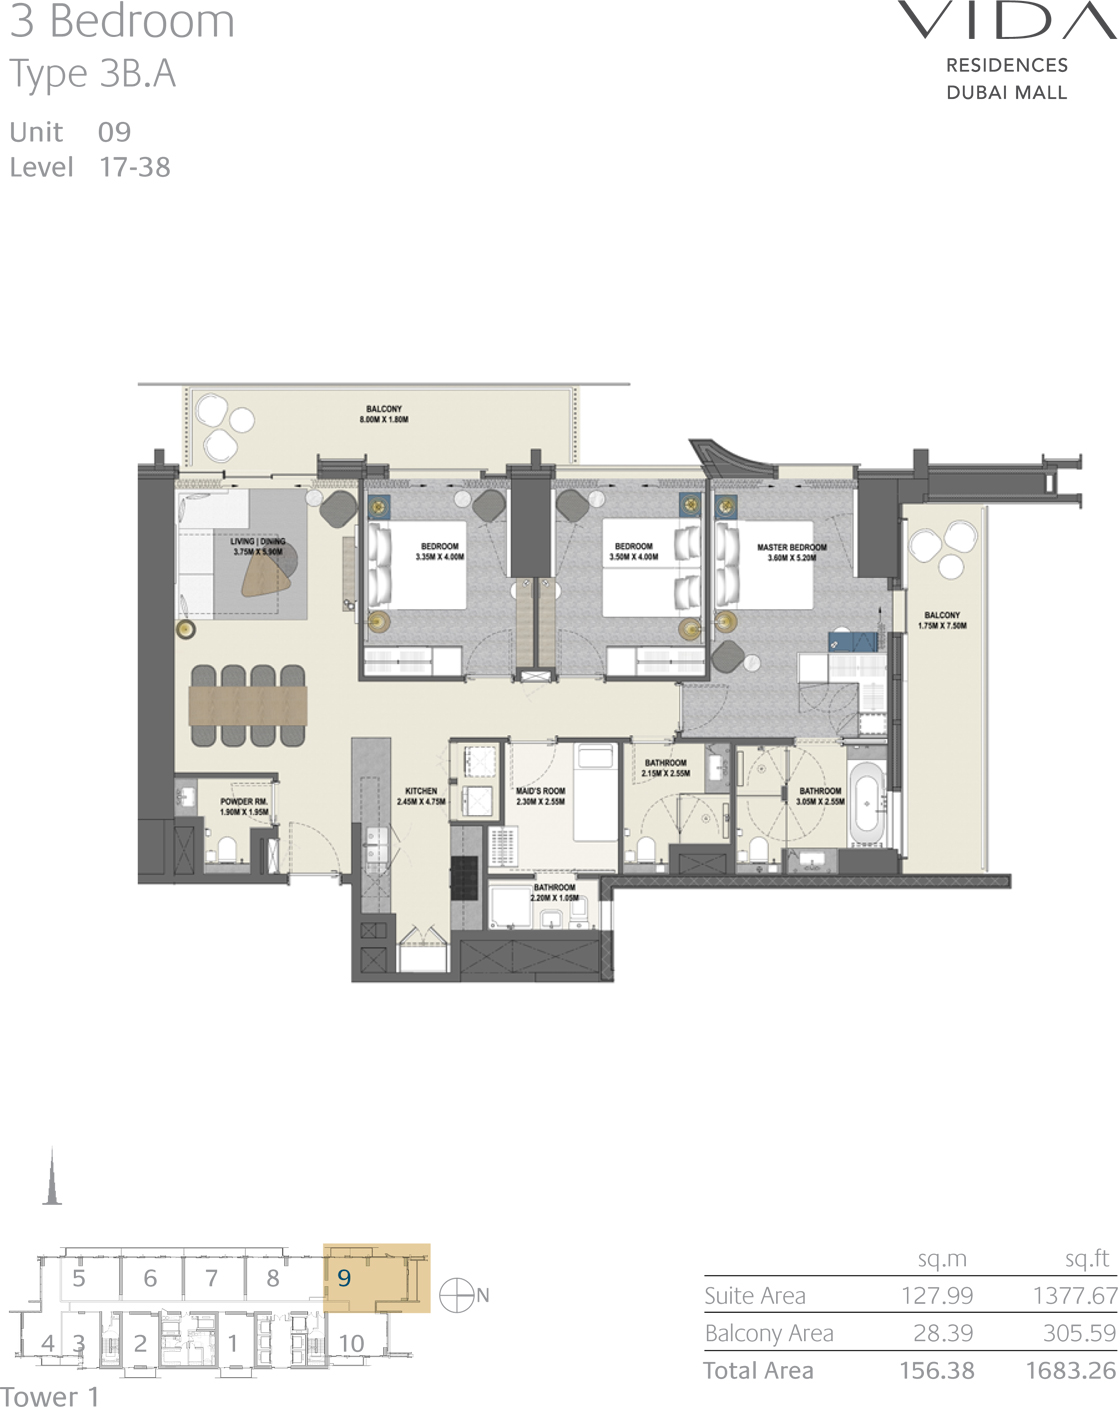 3 Bedroom Type 3B.A Unit 09 Level 17-38